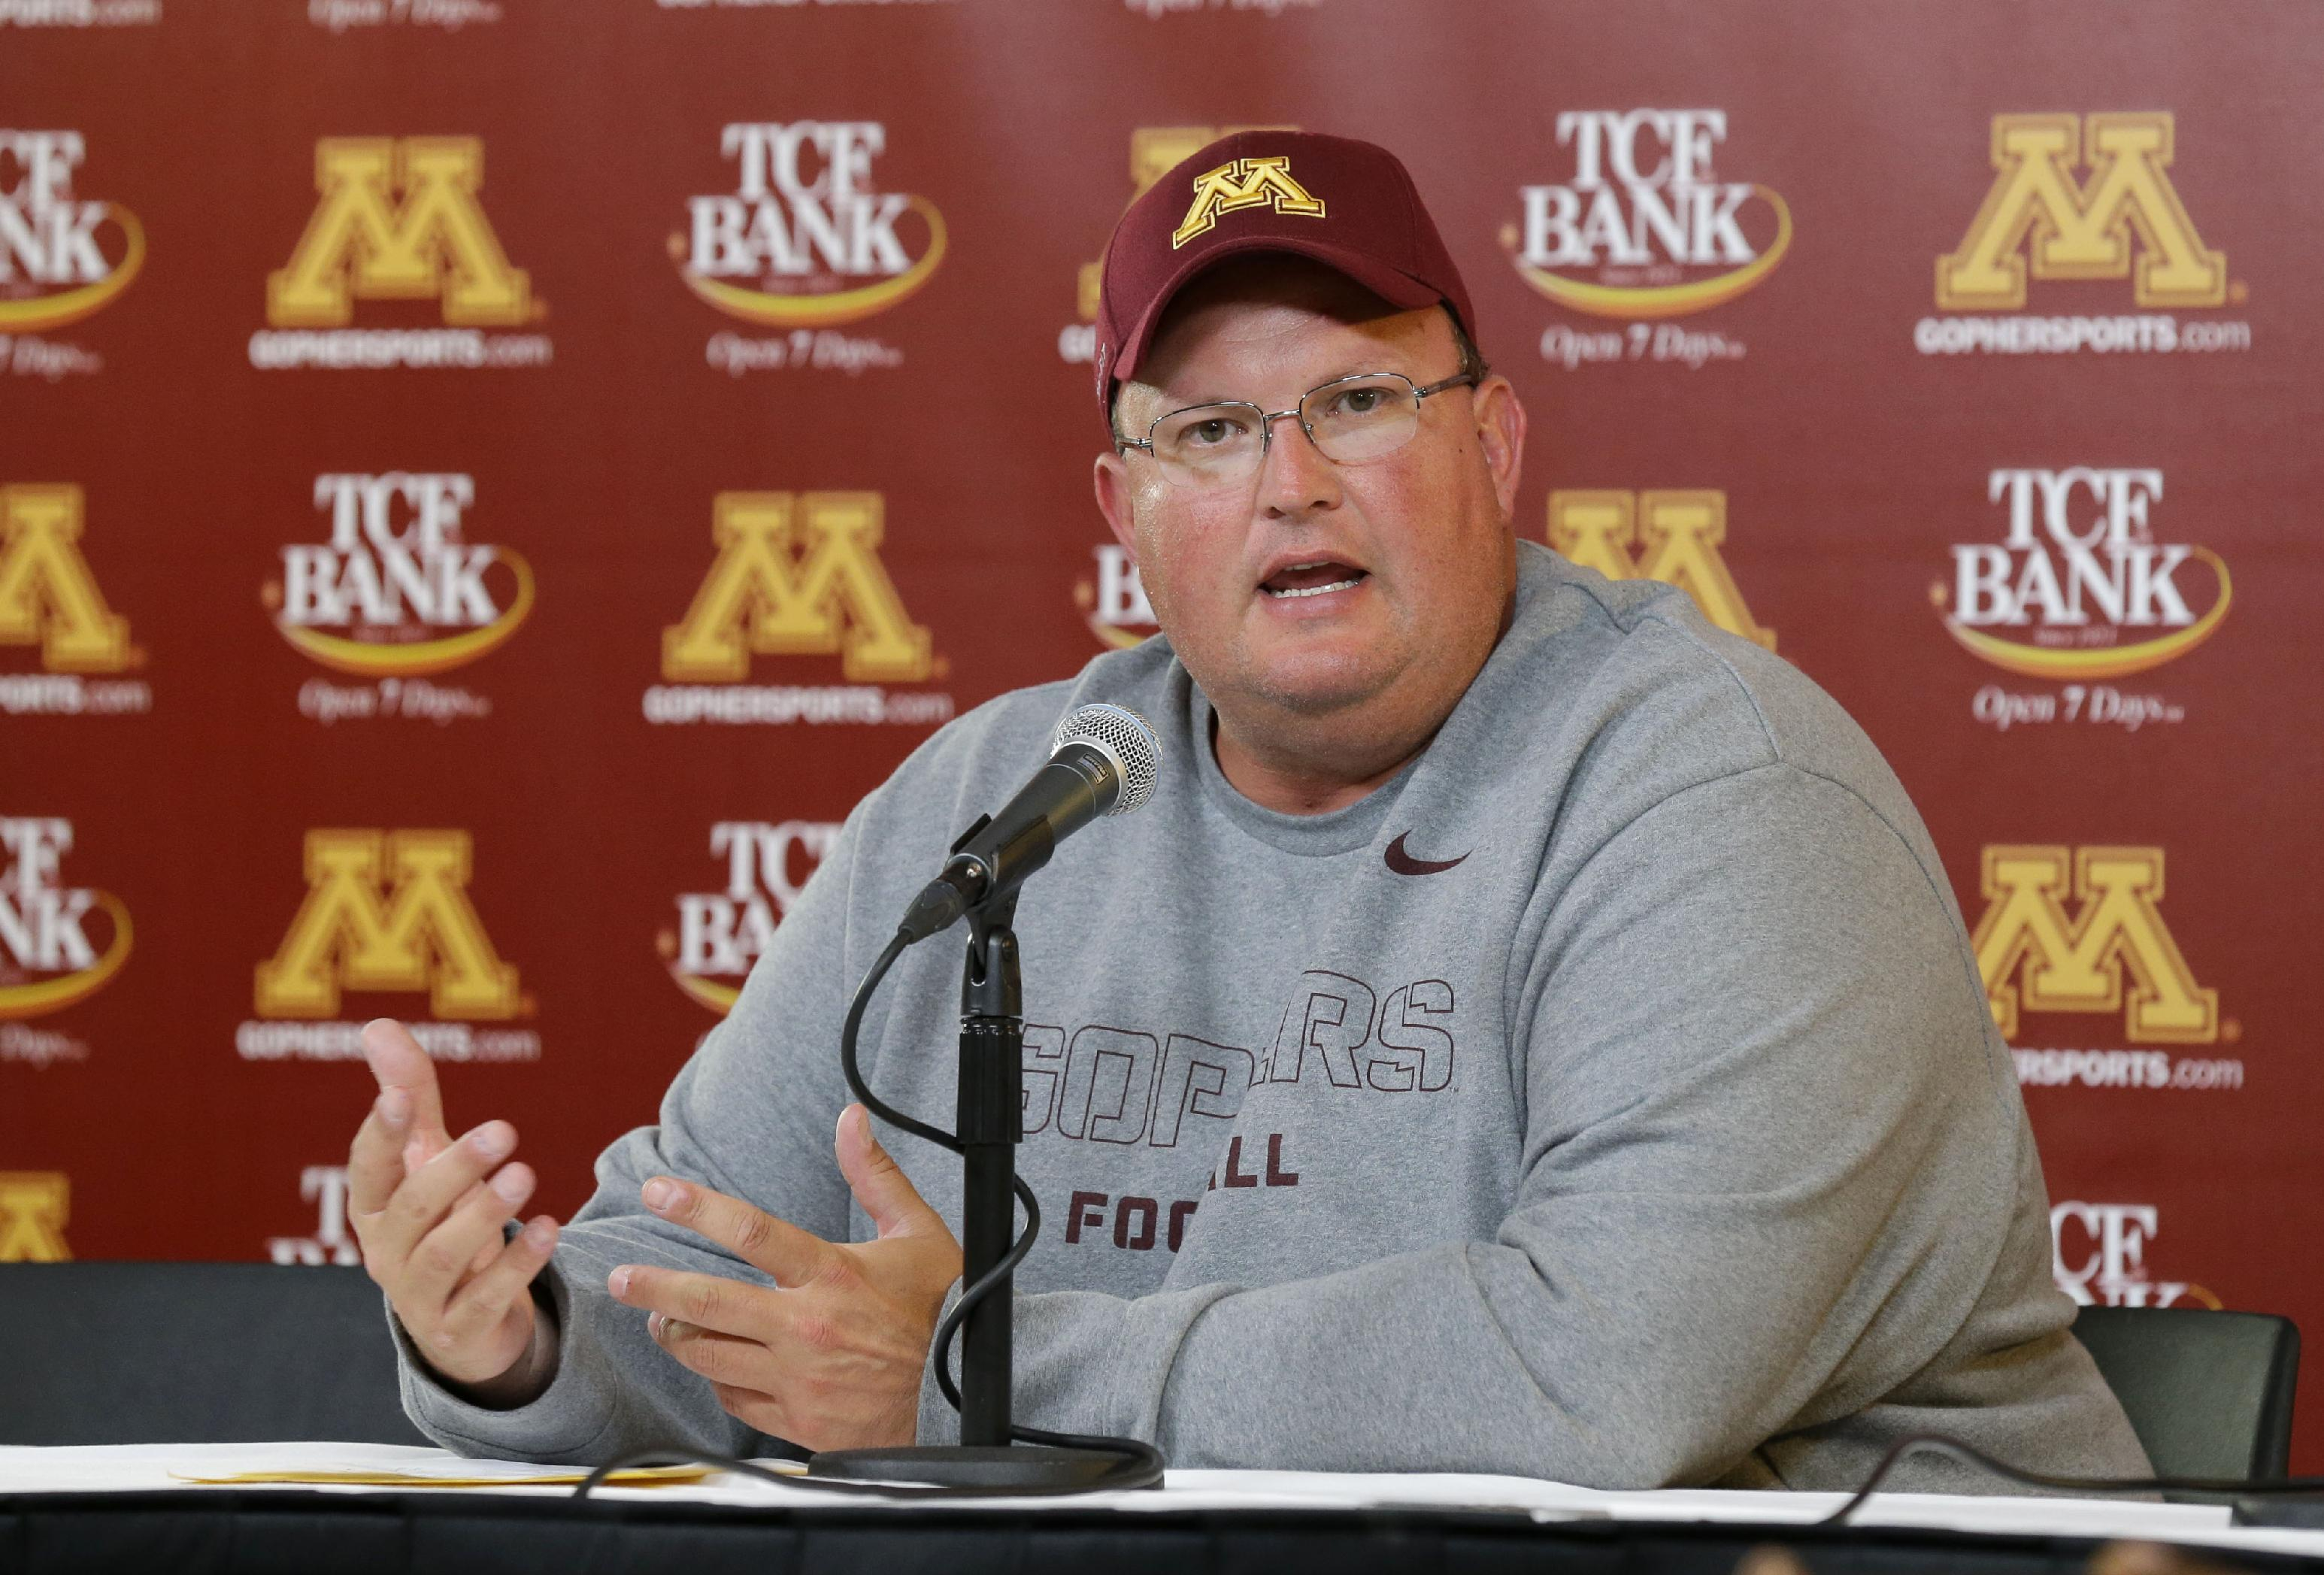 Minnesota defensive coordinator Tracy Claeys speaks during the post-game press conference after an NCAA college football game against Western Illinois in Minneapolis Saturday, Sept. 14, 2013. Head coach Jerry Kill left the game after an epileptic seizure, and Claeys, who was in the press box,  took over Kill's decision-making duties from the booth. Minnesota beat Western Illinois 29-12